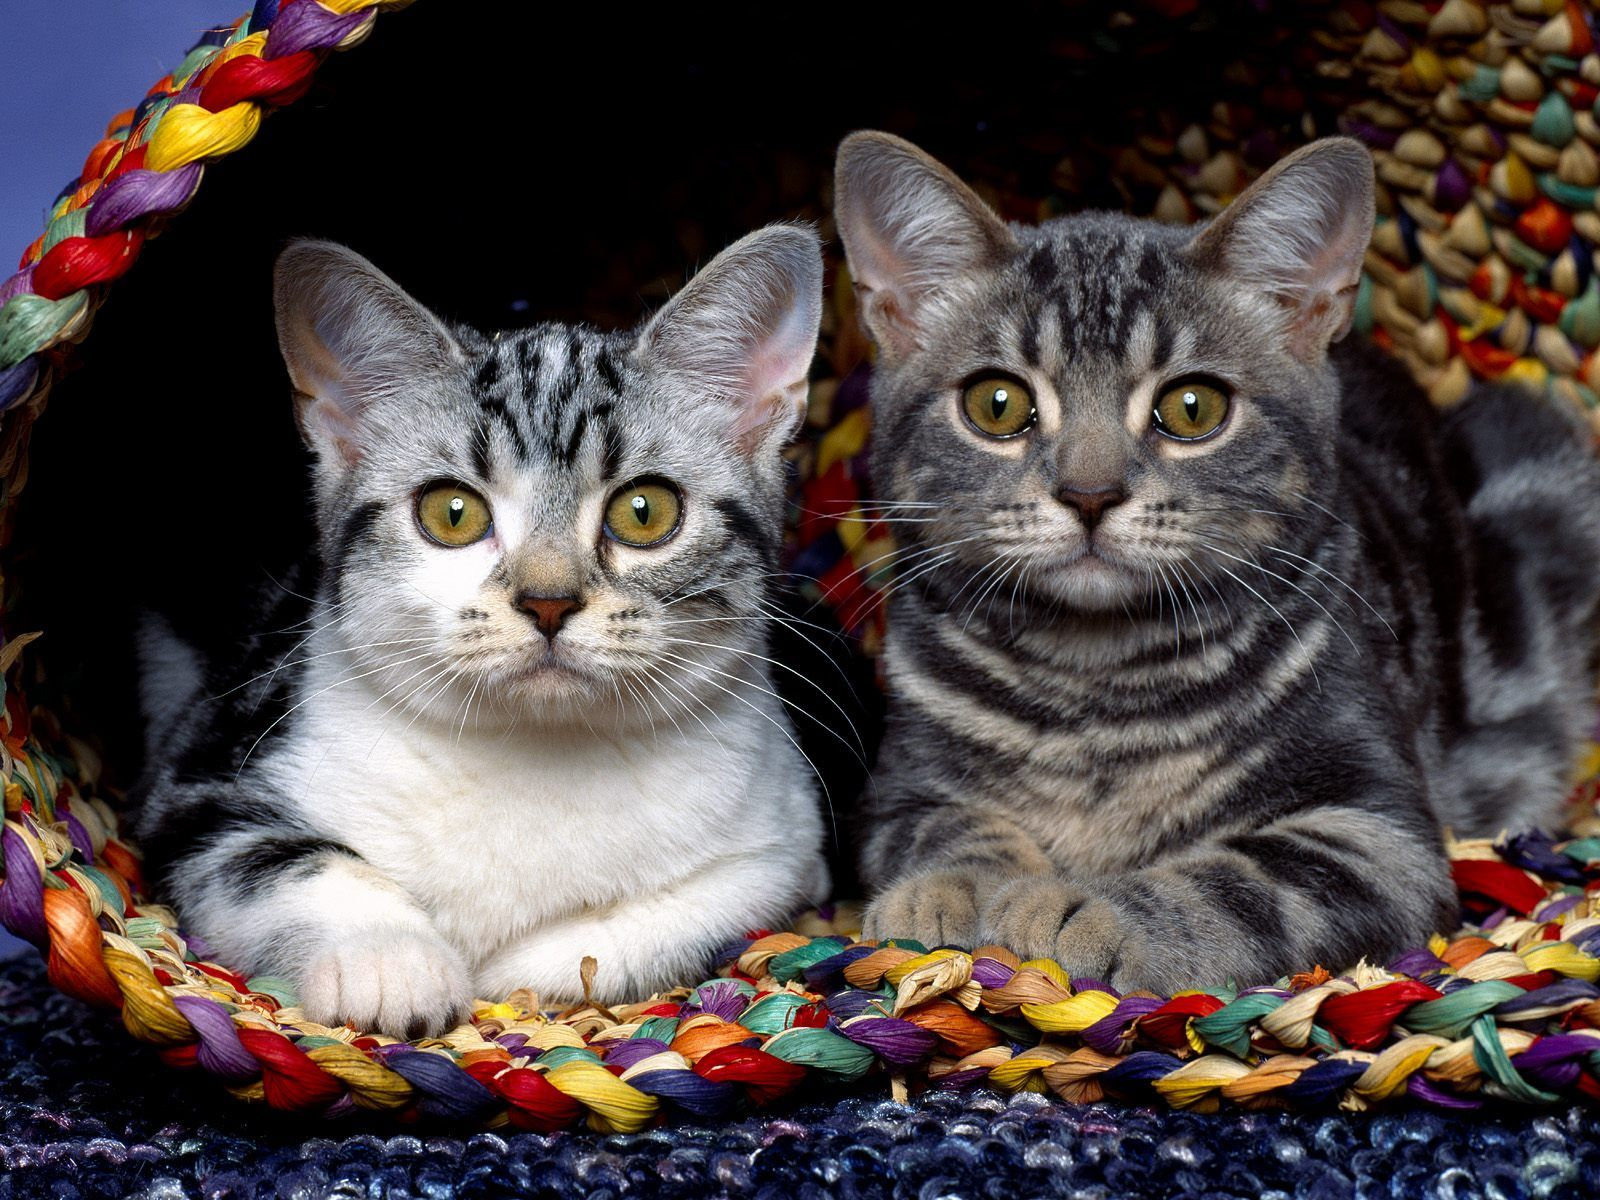 cute cats and kittens   Download Great Cute Kittens Funny Cats Pictures Wallpaper HD 1080p ...